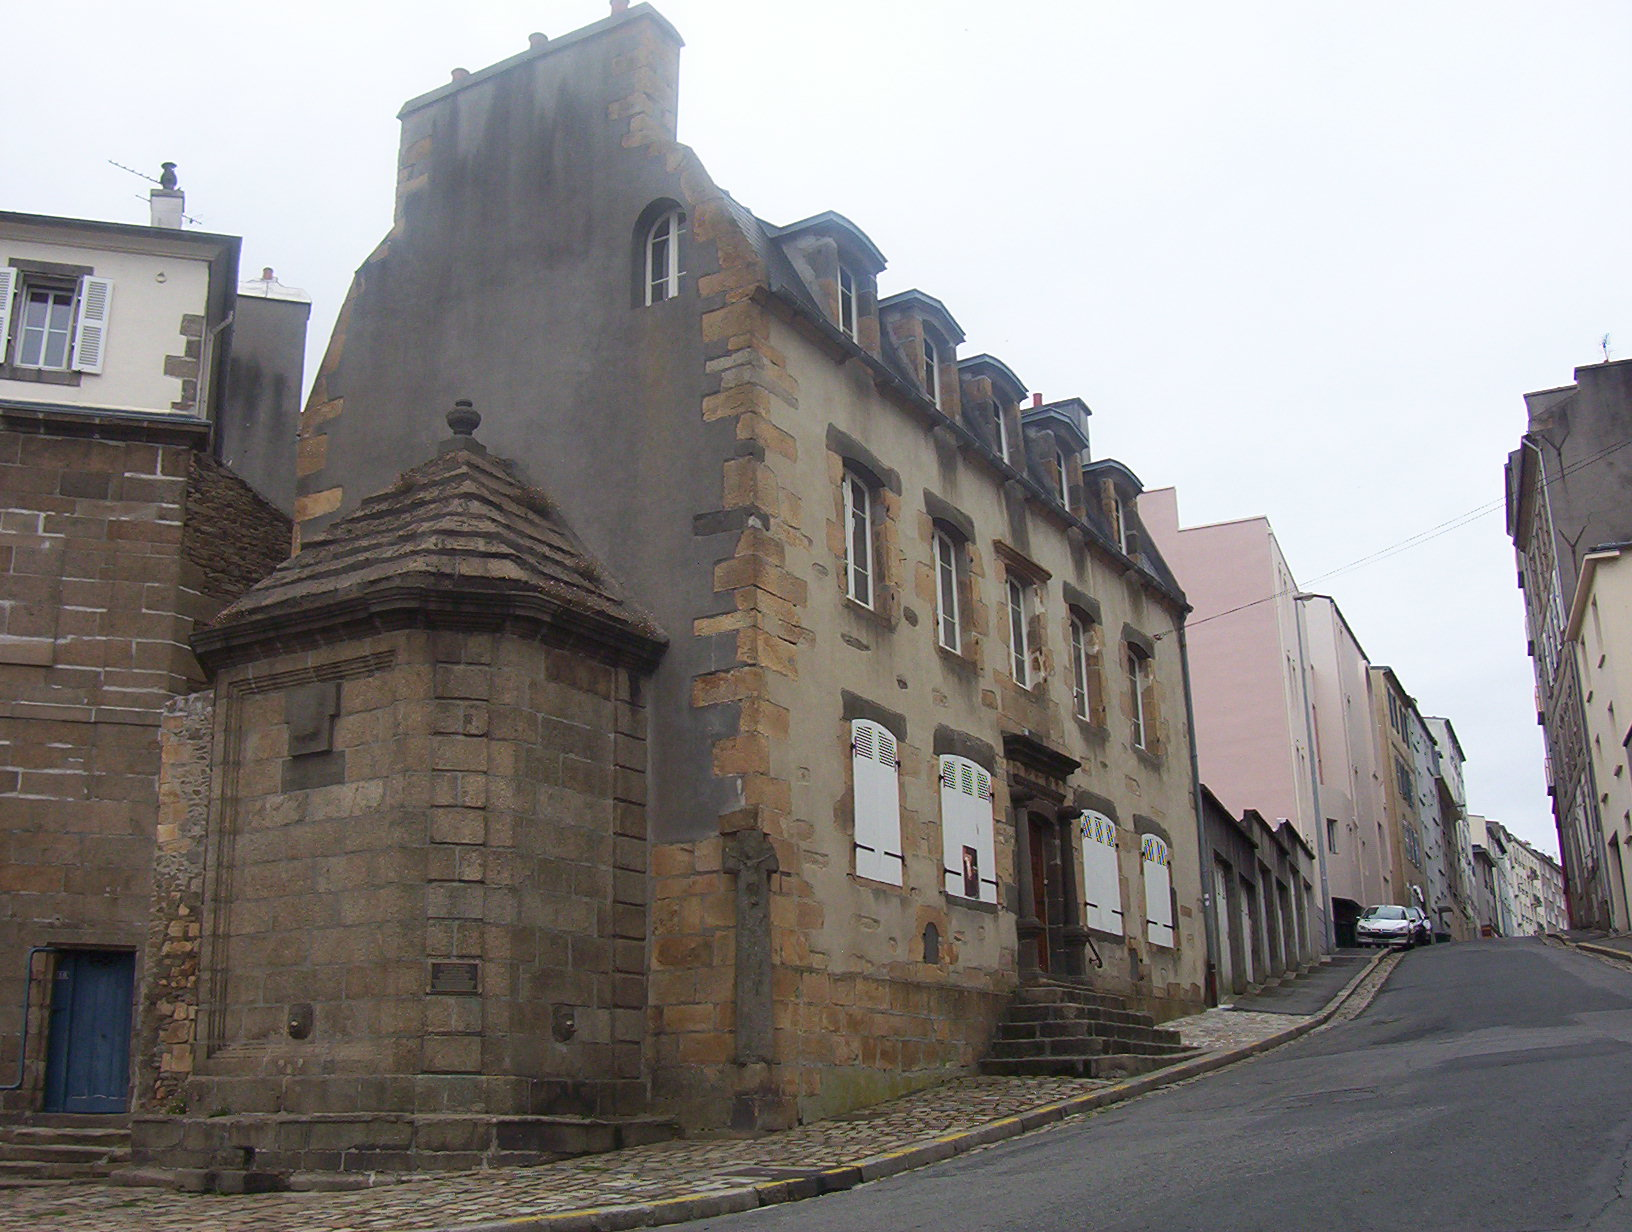 http://upload.wikimedia.org/wikipedia/commons/b/b0/Maison_de_la_Fontaine-Brest.jpg